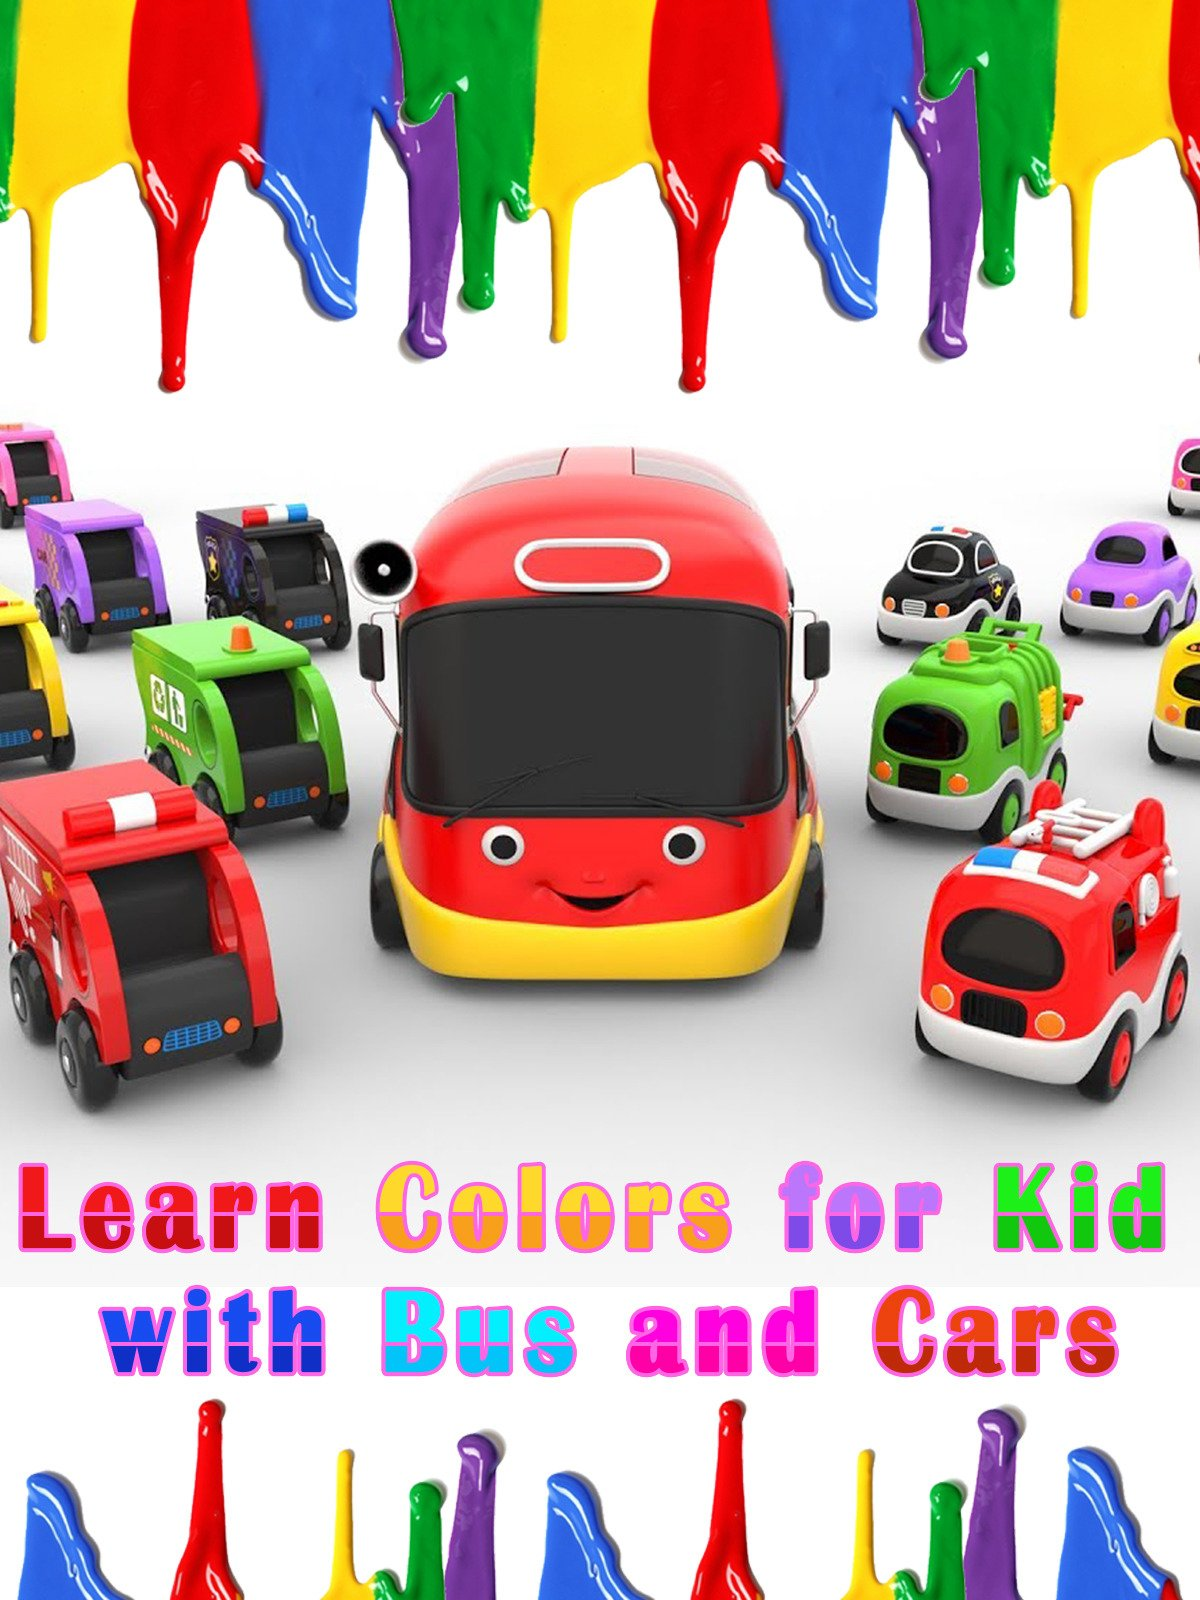 Learn Colors for Kid with Bus and Cars